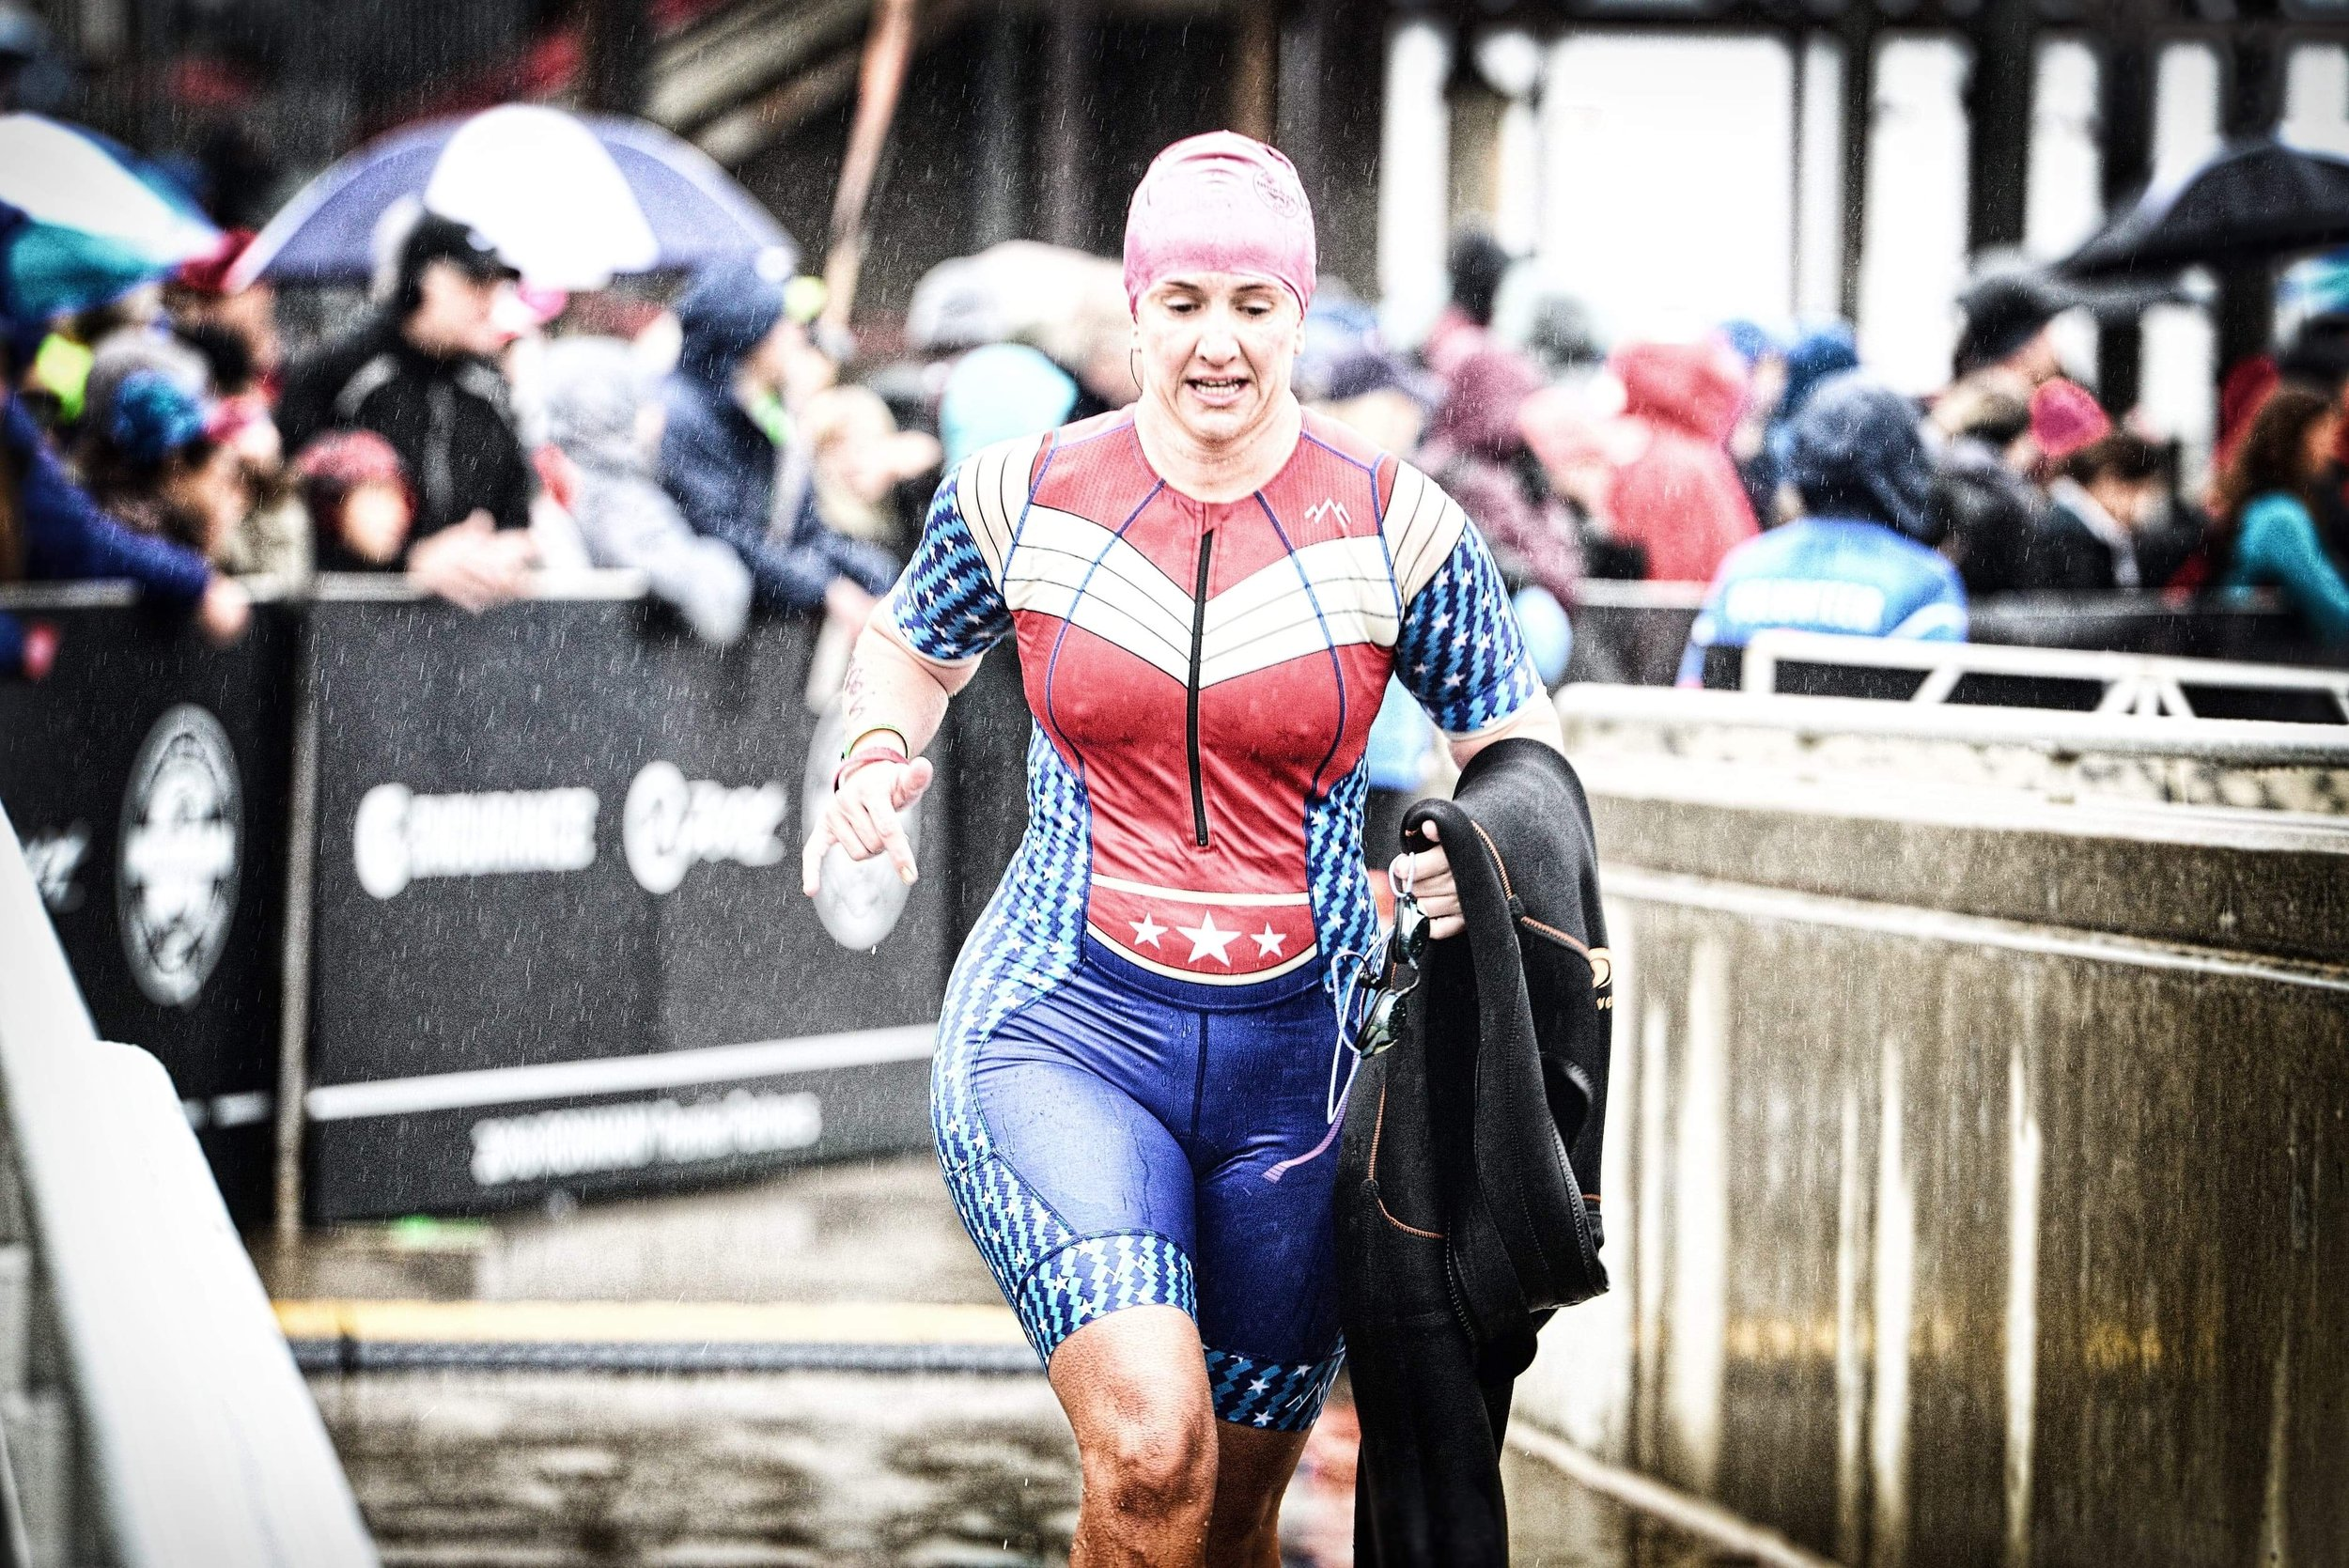 Coach_Terry_Wilson_Pursuit_of_The_Perfect_Race_IRONMAN_Louisville_Joanna_1.JPG